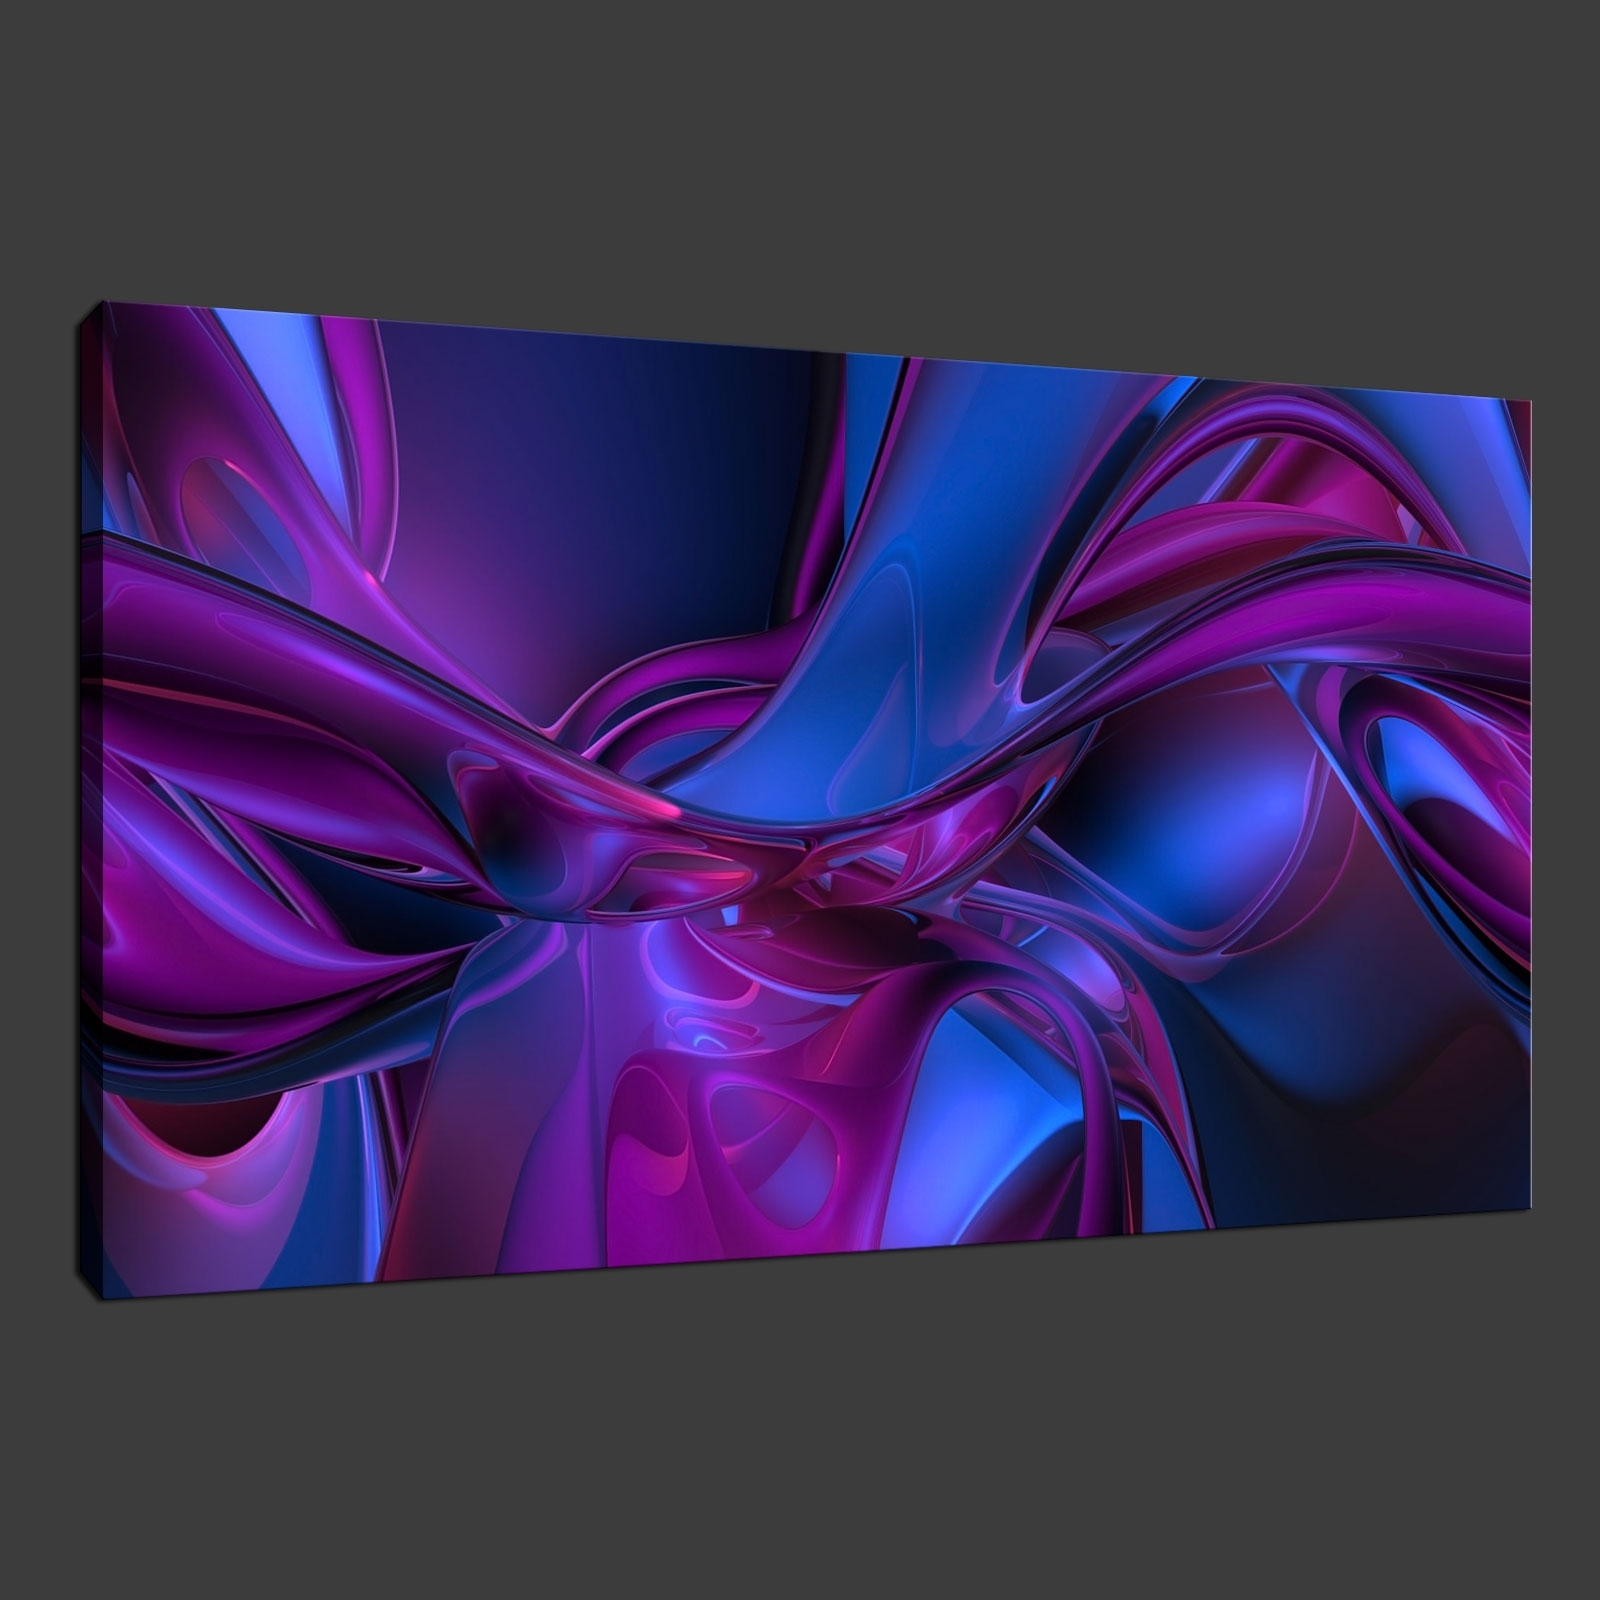 Purple Wall Art Intended For 2017 Purple And Blue Wall Art – Elitflat (View 9 of 15)